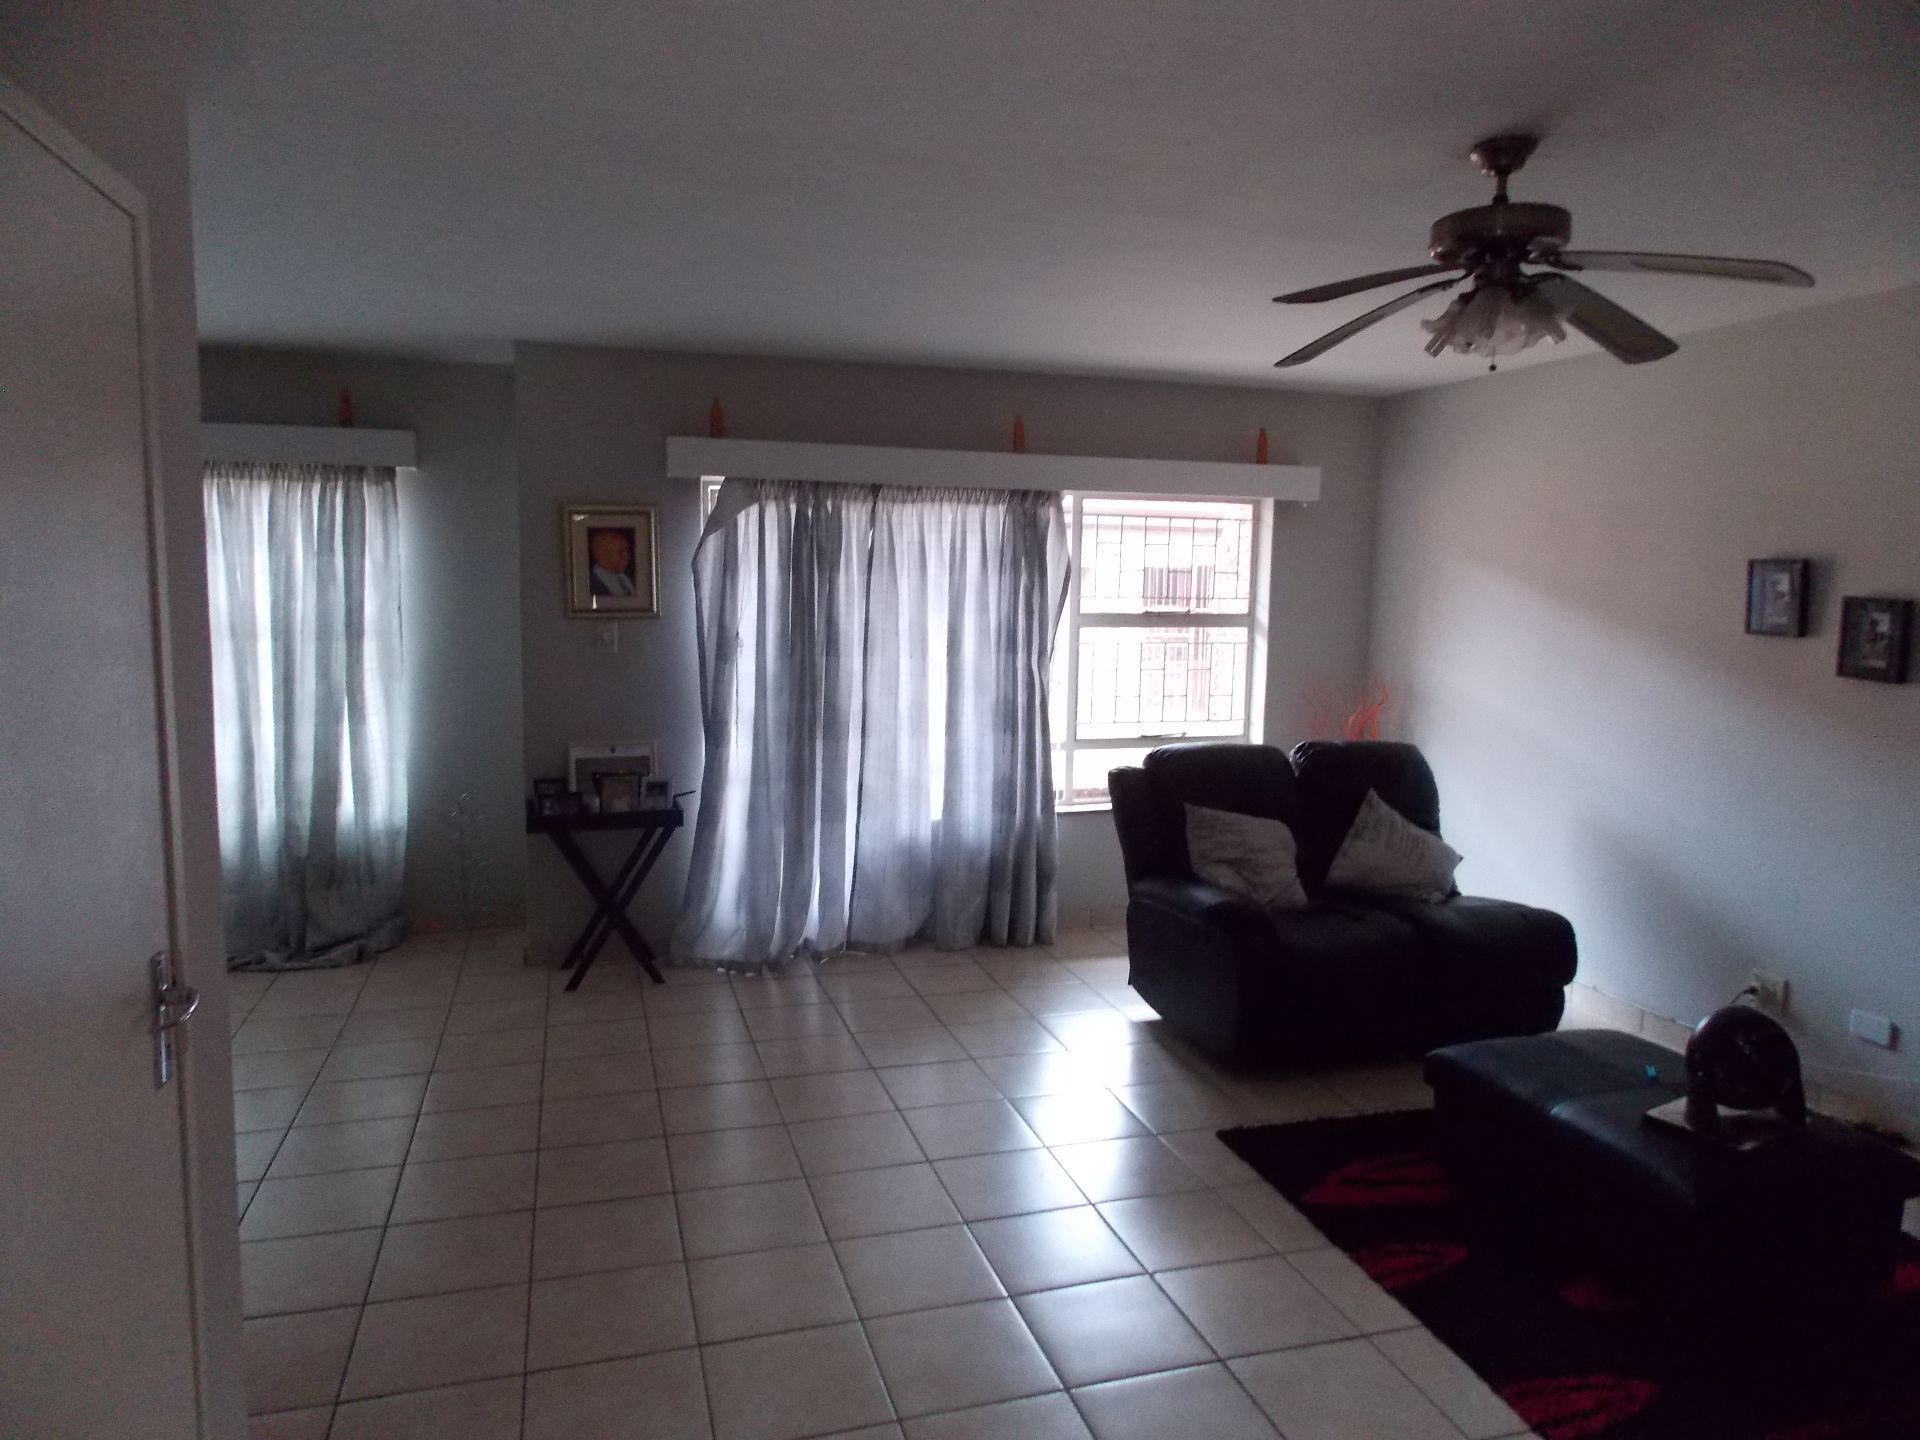 Potchefstroom Central property for sale. Ref No: 13414401. Picture no 7